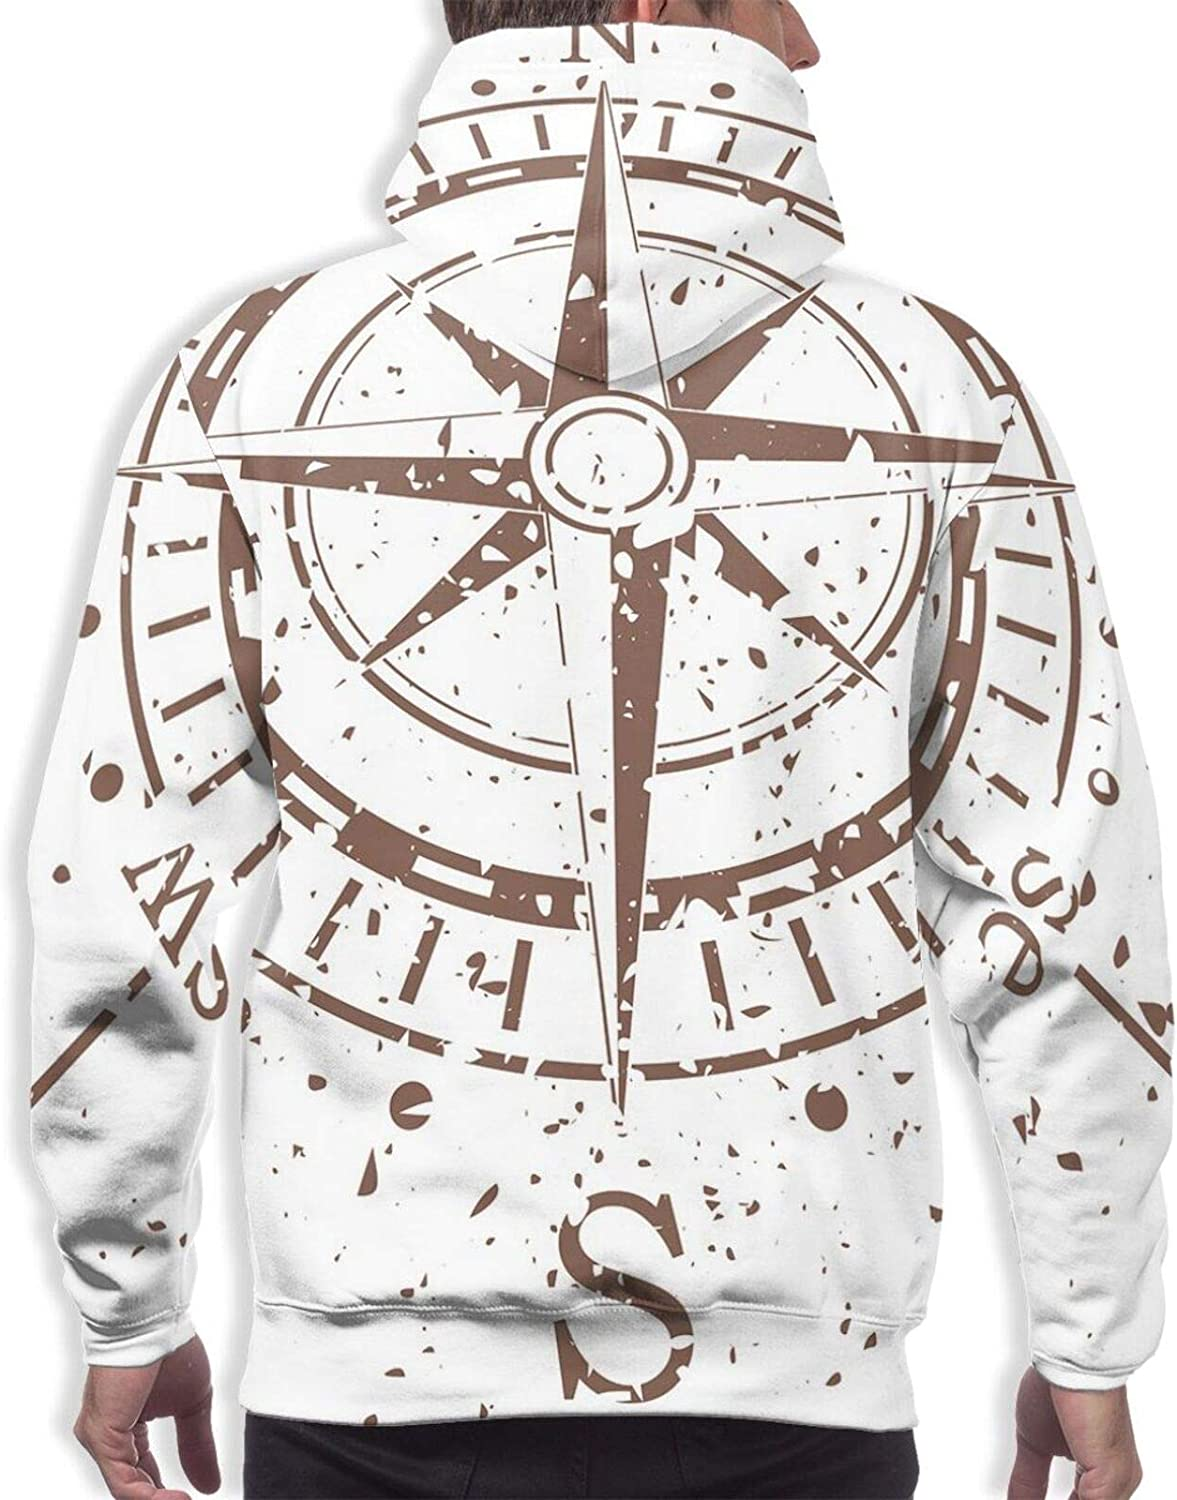 Men's Hoodies Sweatshirts,Retro Tainted and Splashed Paint On A Voyage Windrose Discovery Theme Vintage Art Design